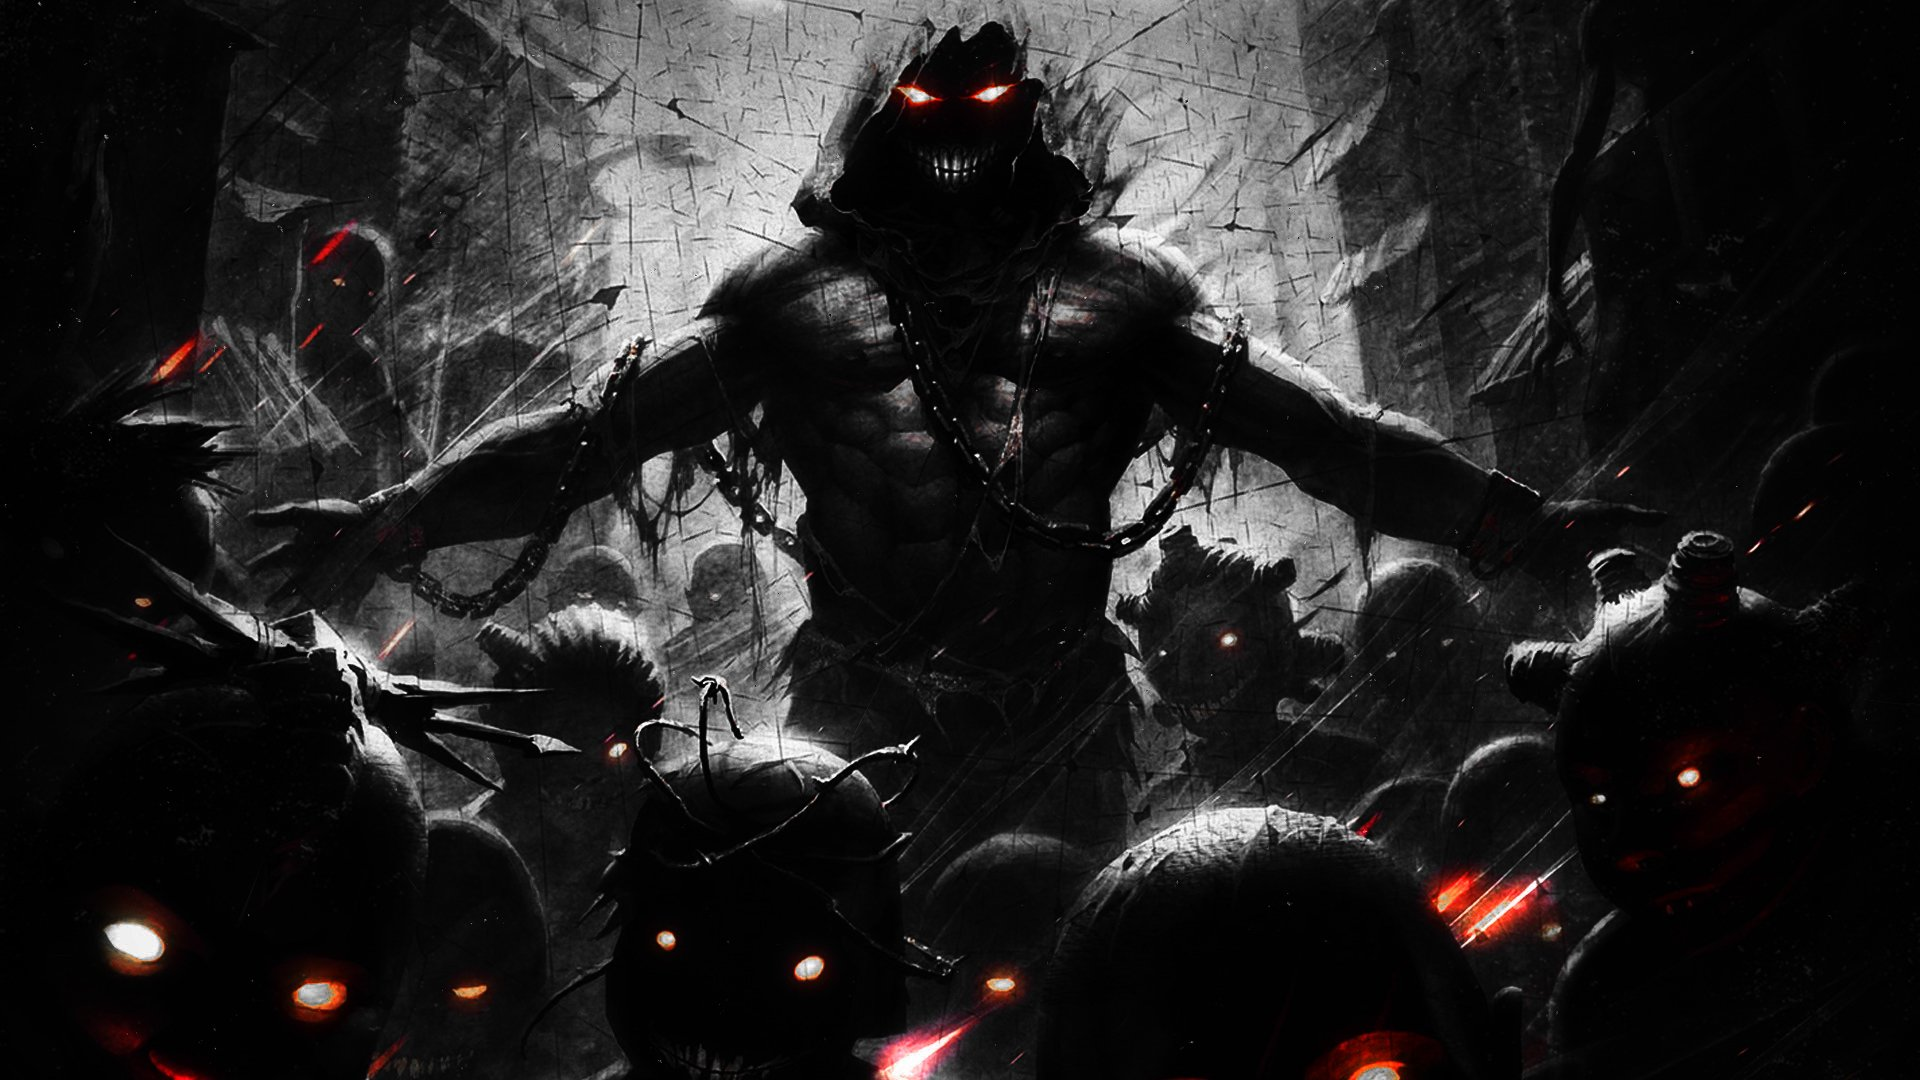 Disturbed The Guy Wallpaper Asylum | www.pixshark.com ...